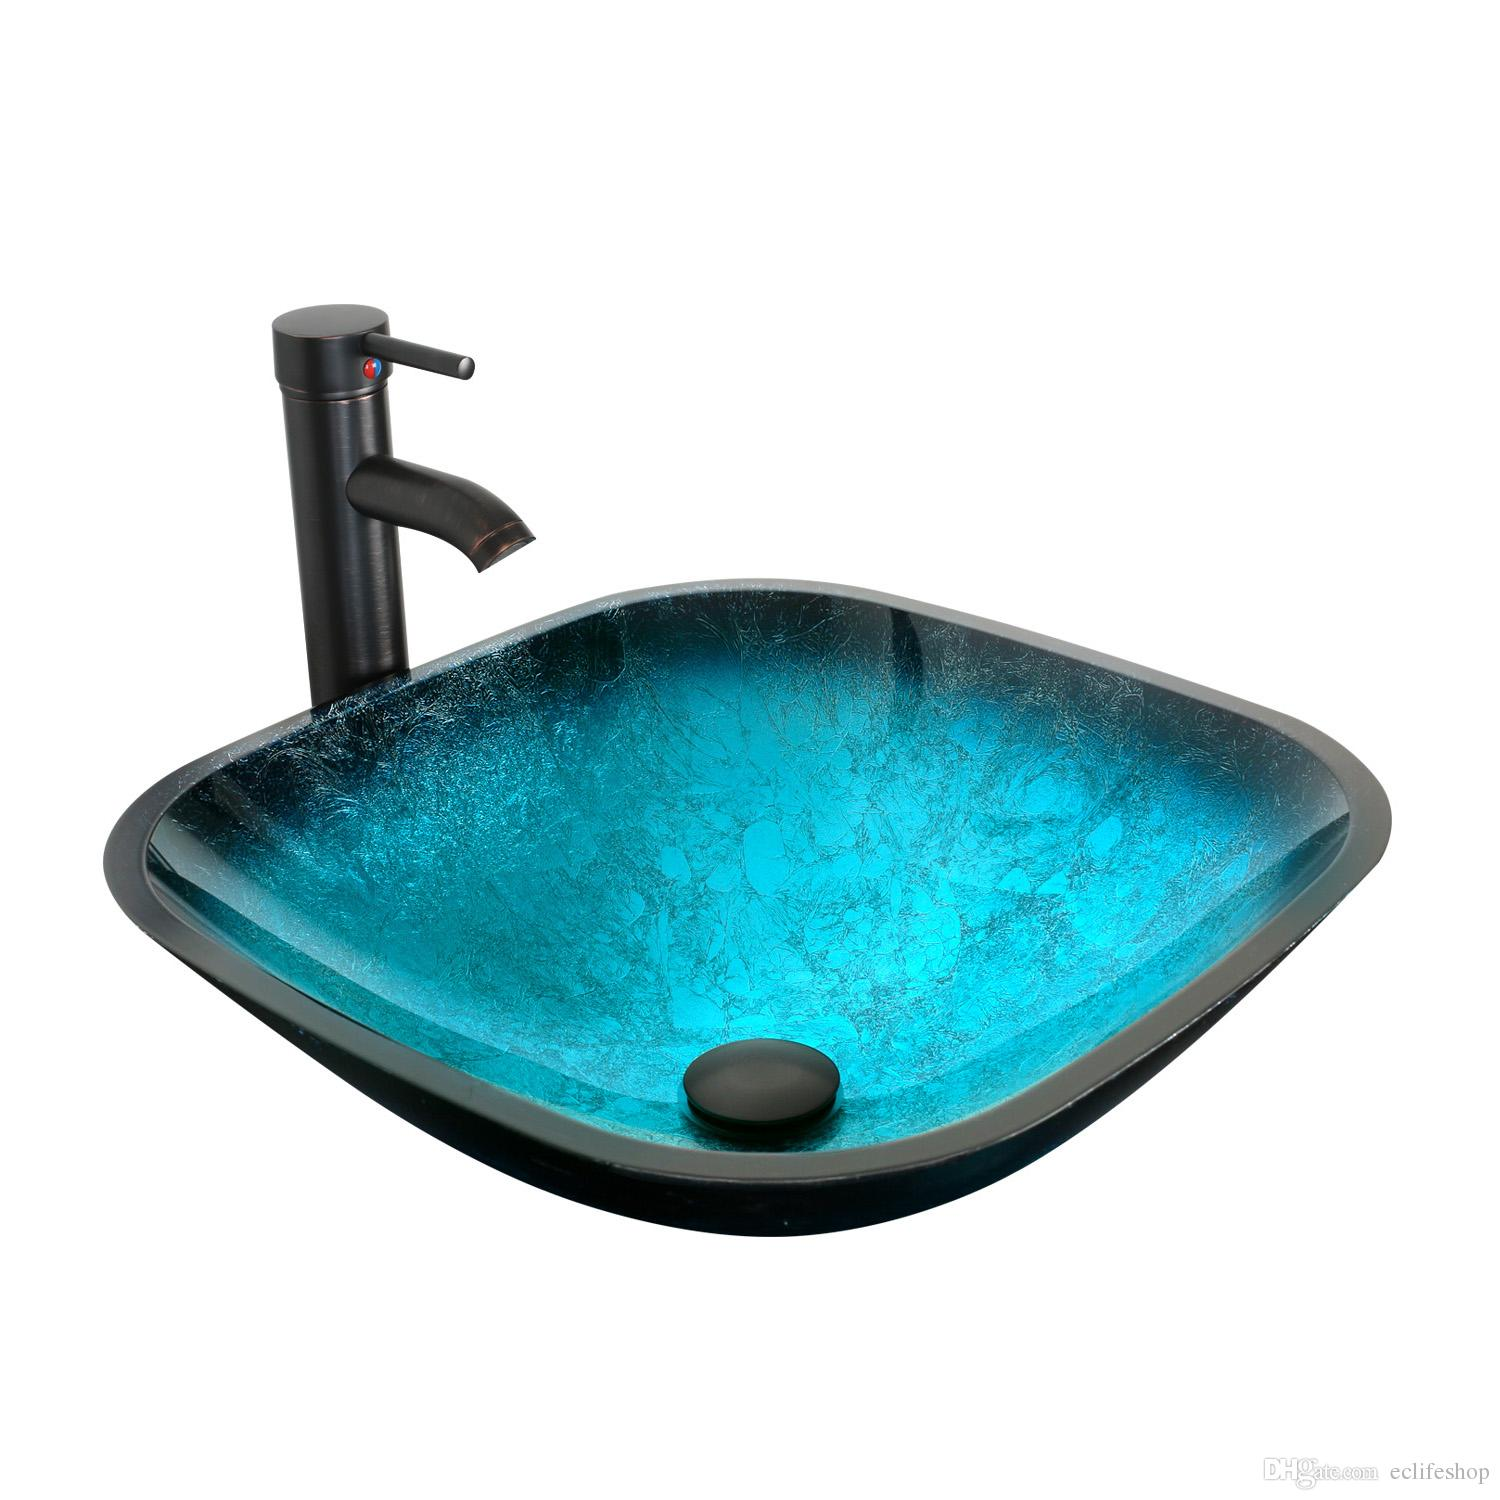 2018 Eclife Turquoise Square Bathroom Sink Artistic Tempered Glass ...